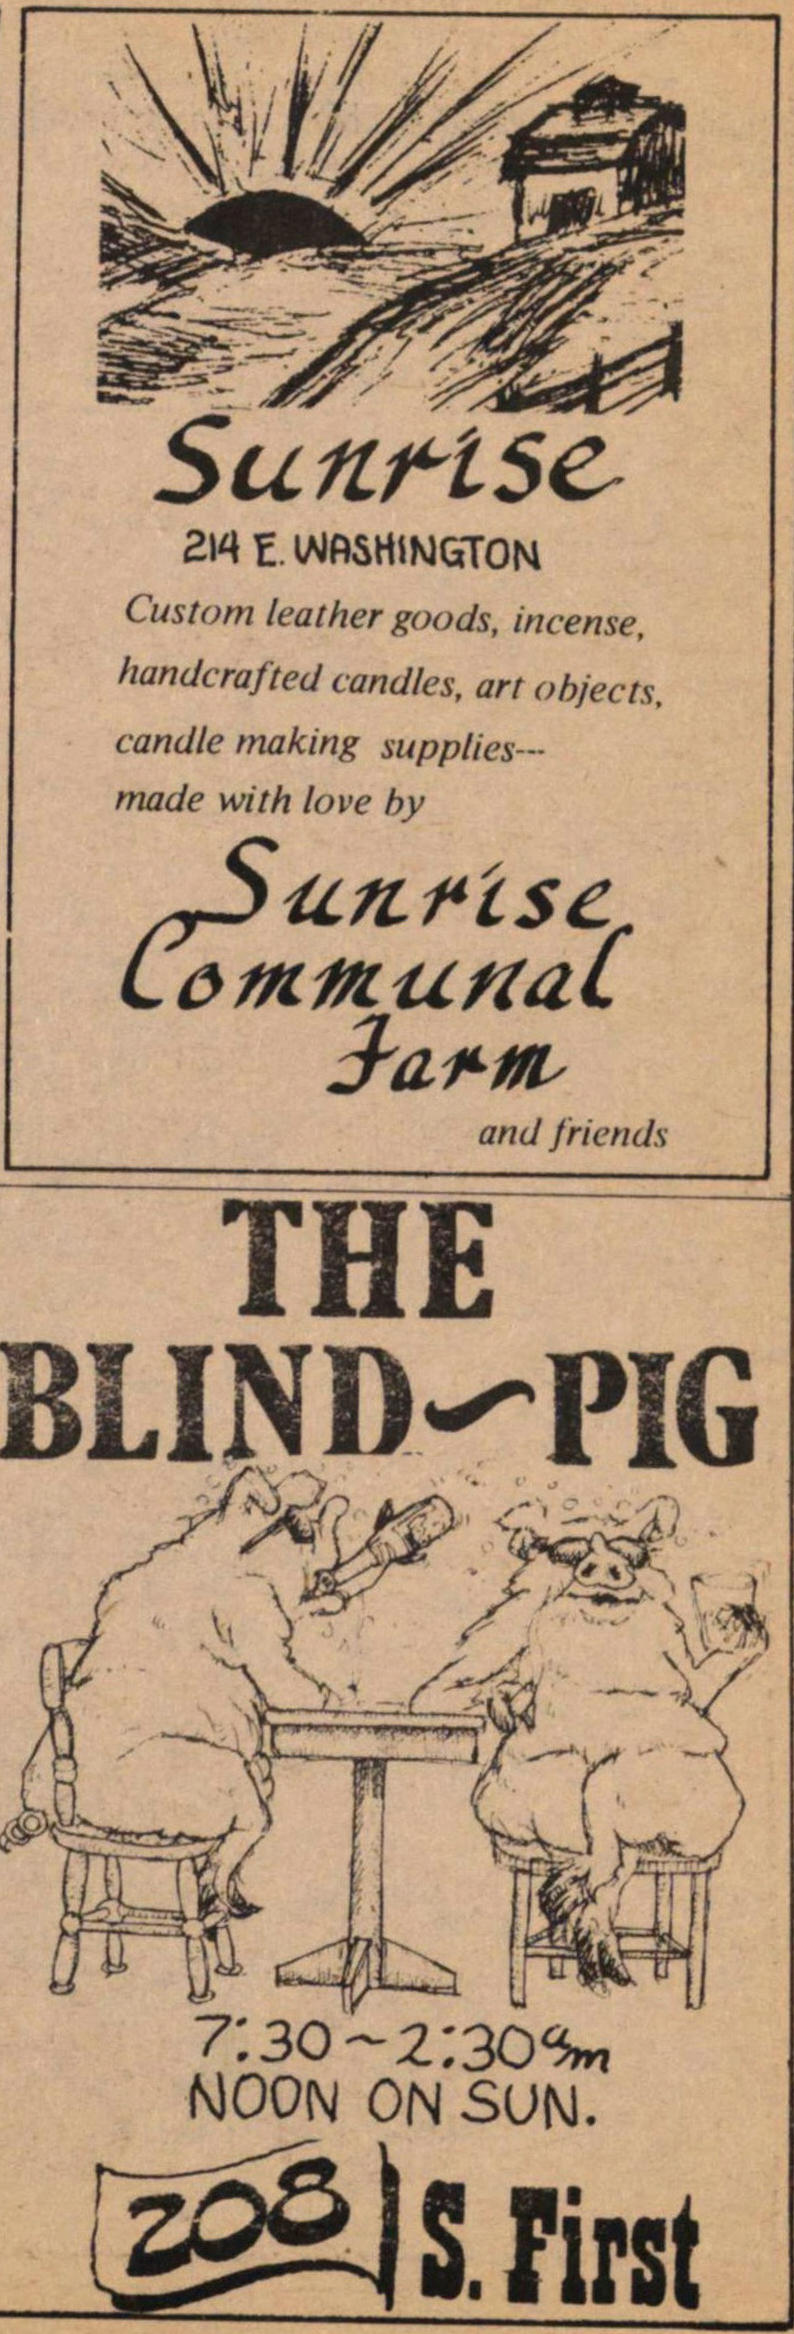 Sunrise Communal Farm, Blind Pig ads image